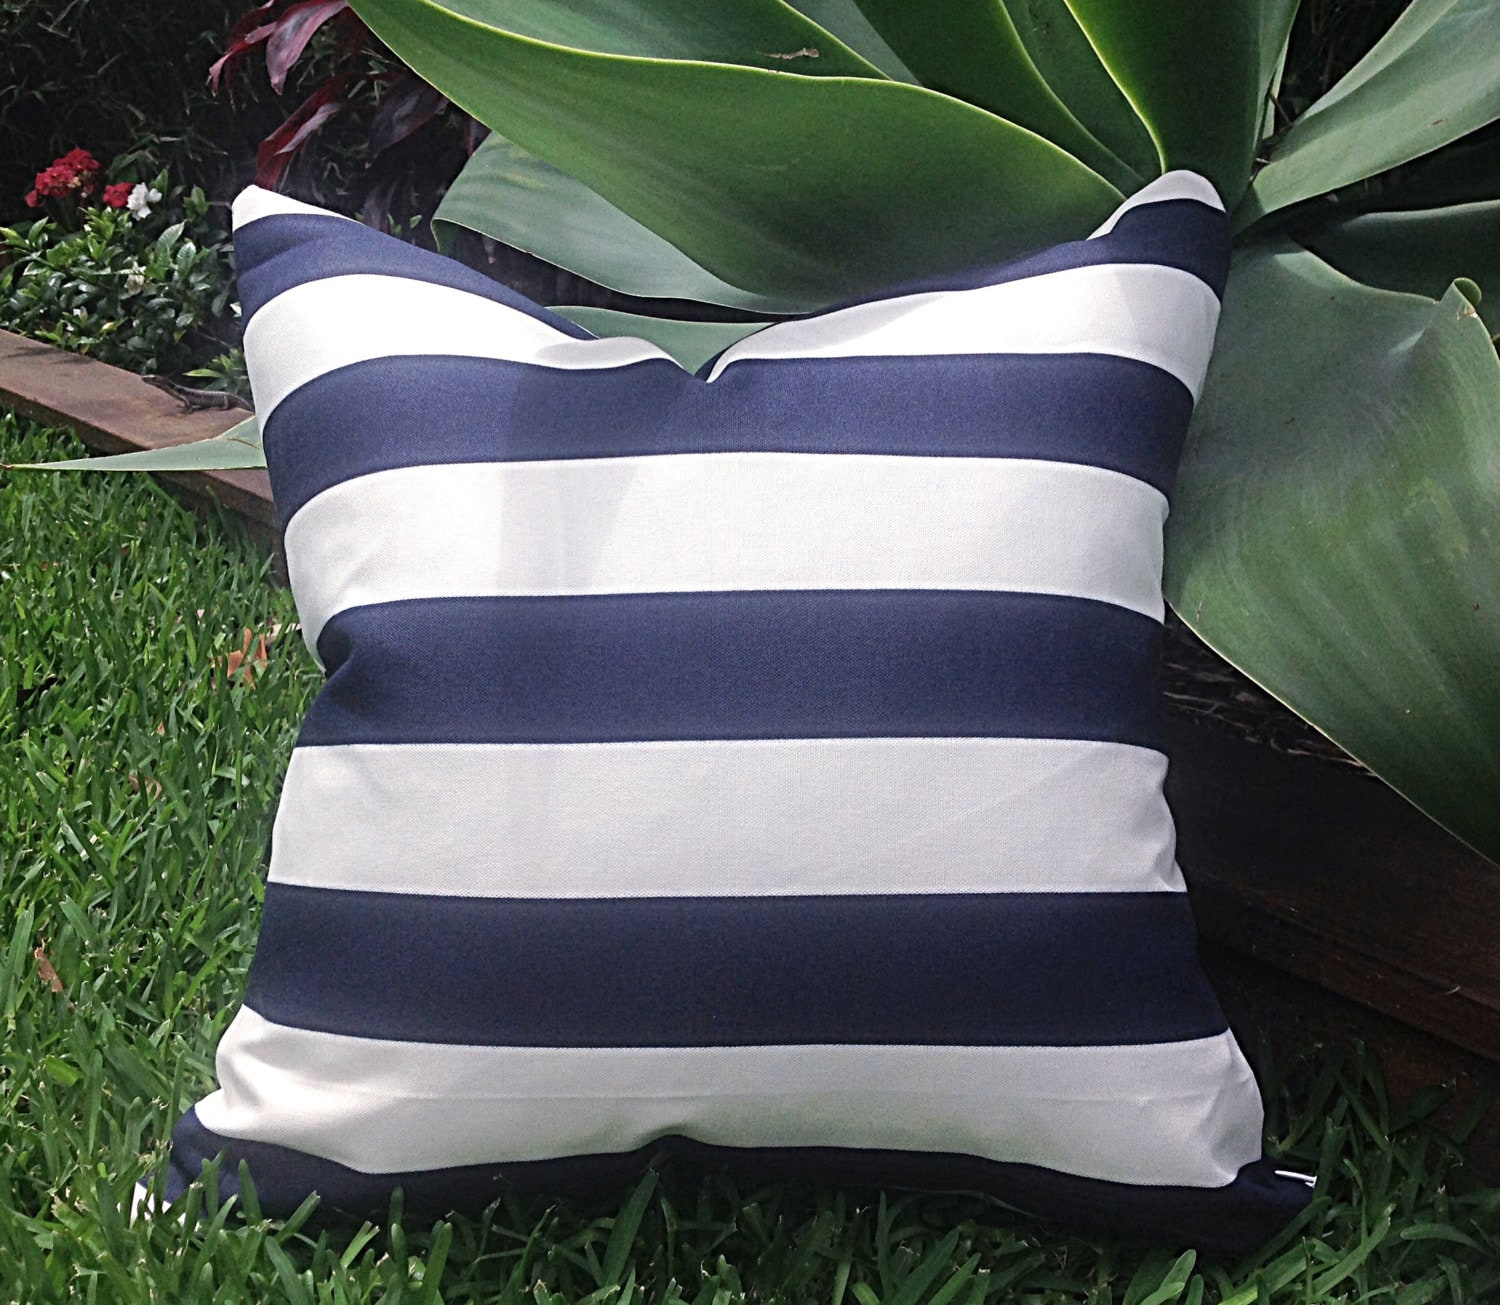 Amazoncom: navy stripe pillow